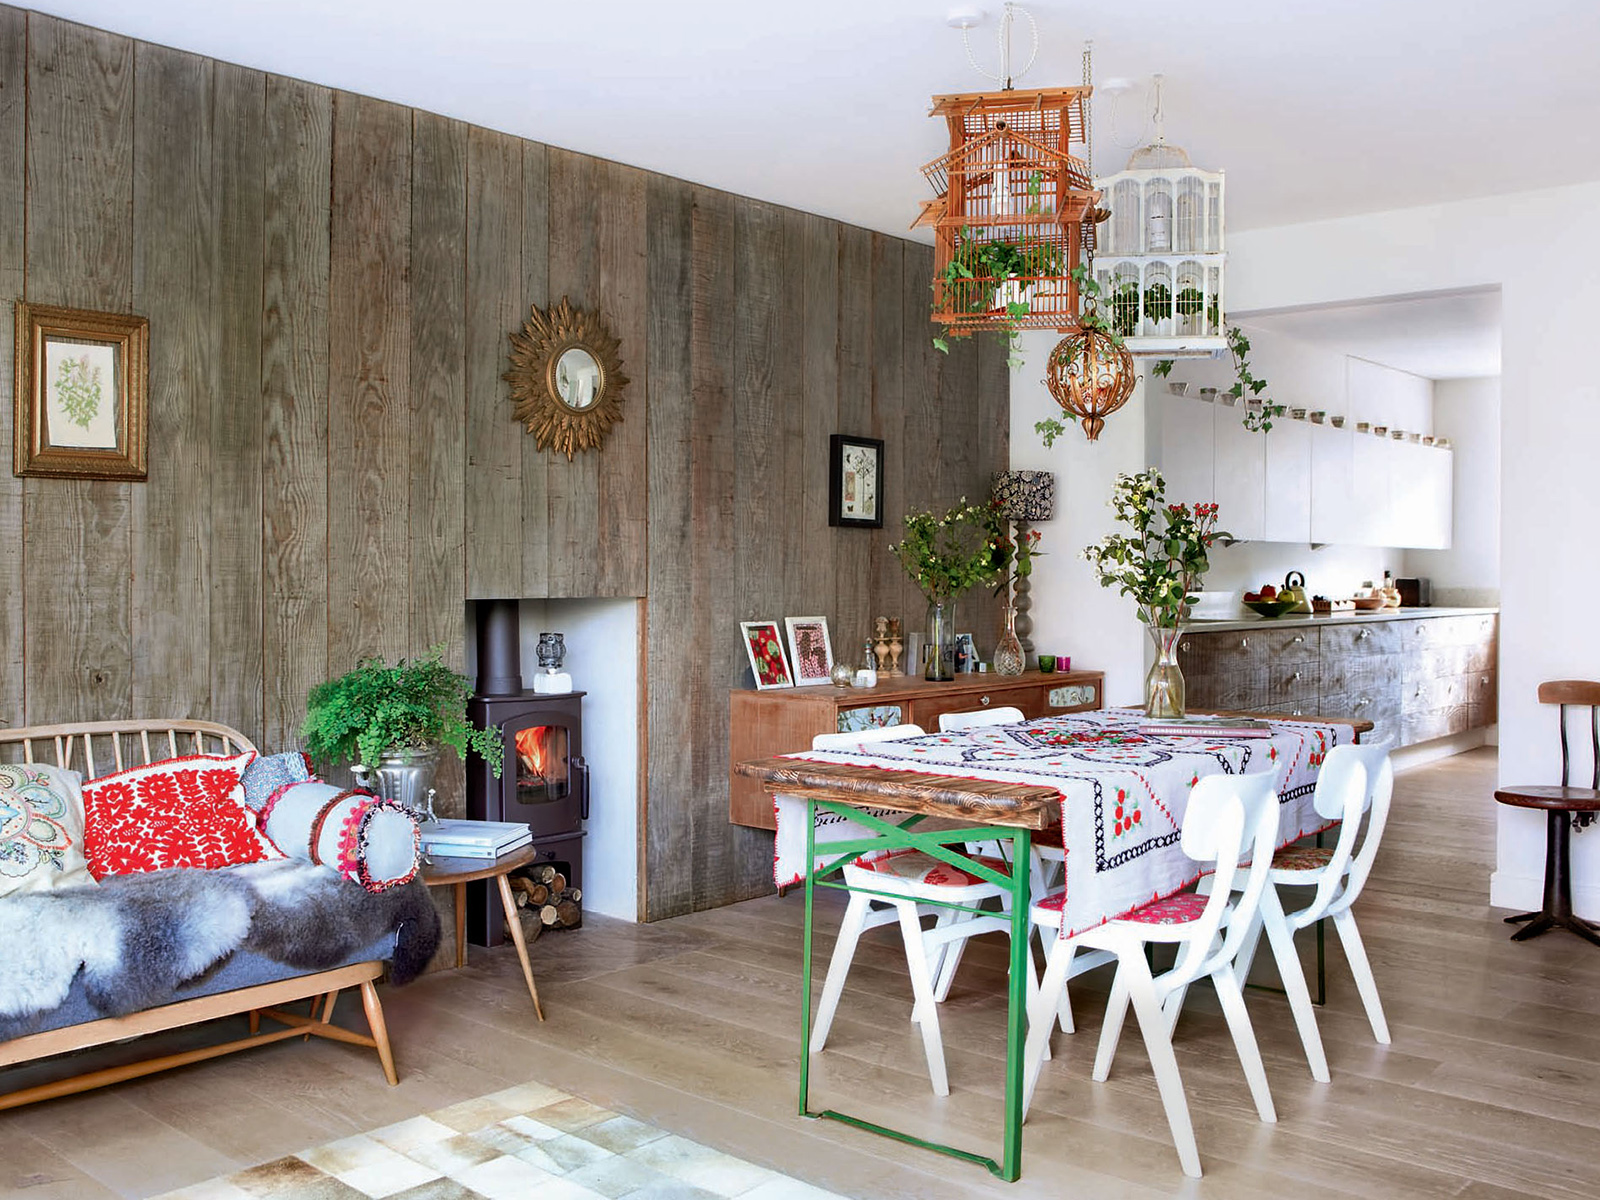 Biophilia, is a love of nature. A refurbishment project by Oliver Heath features a natural reclaimed wooden clad wall and a variety of living plants in his vintage boho home in Brighton. #biophilia #oliverheath #podcast #sophierobinson